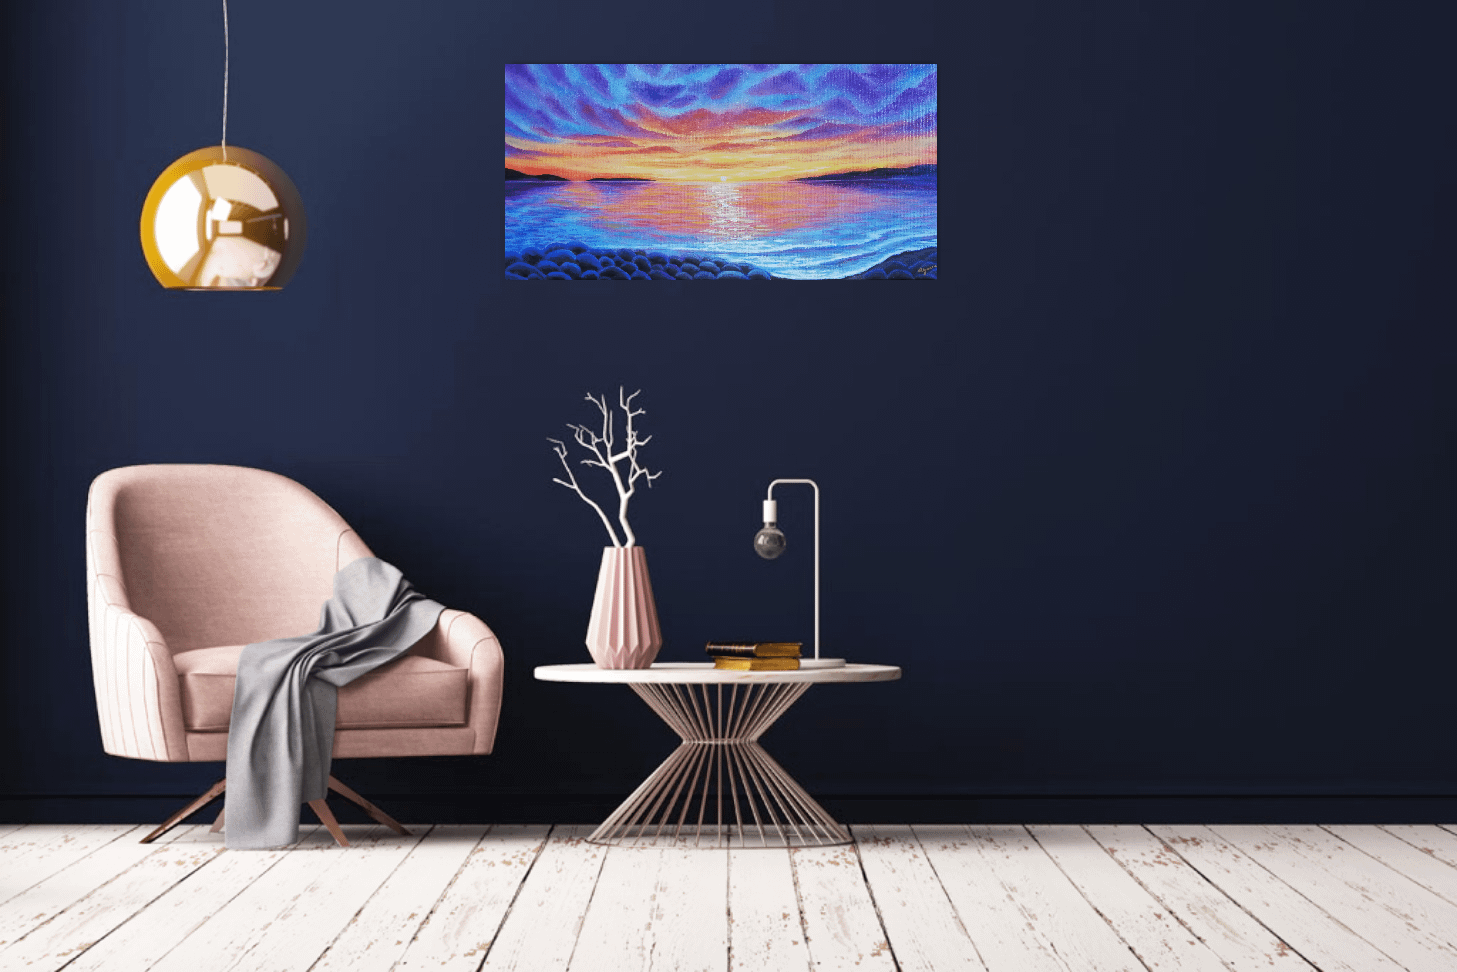 Feel your inner peace, look through the painting